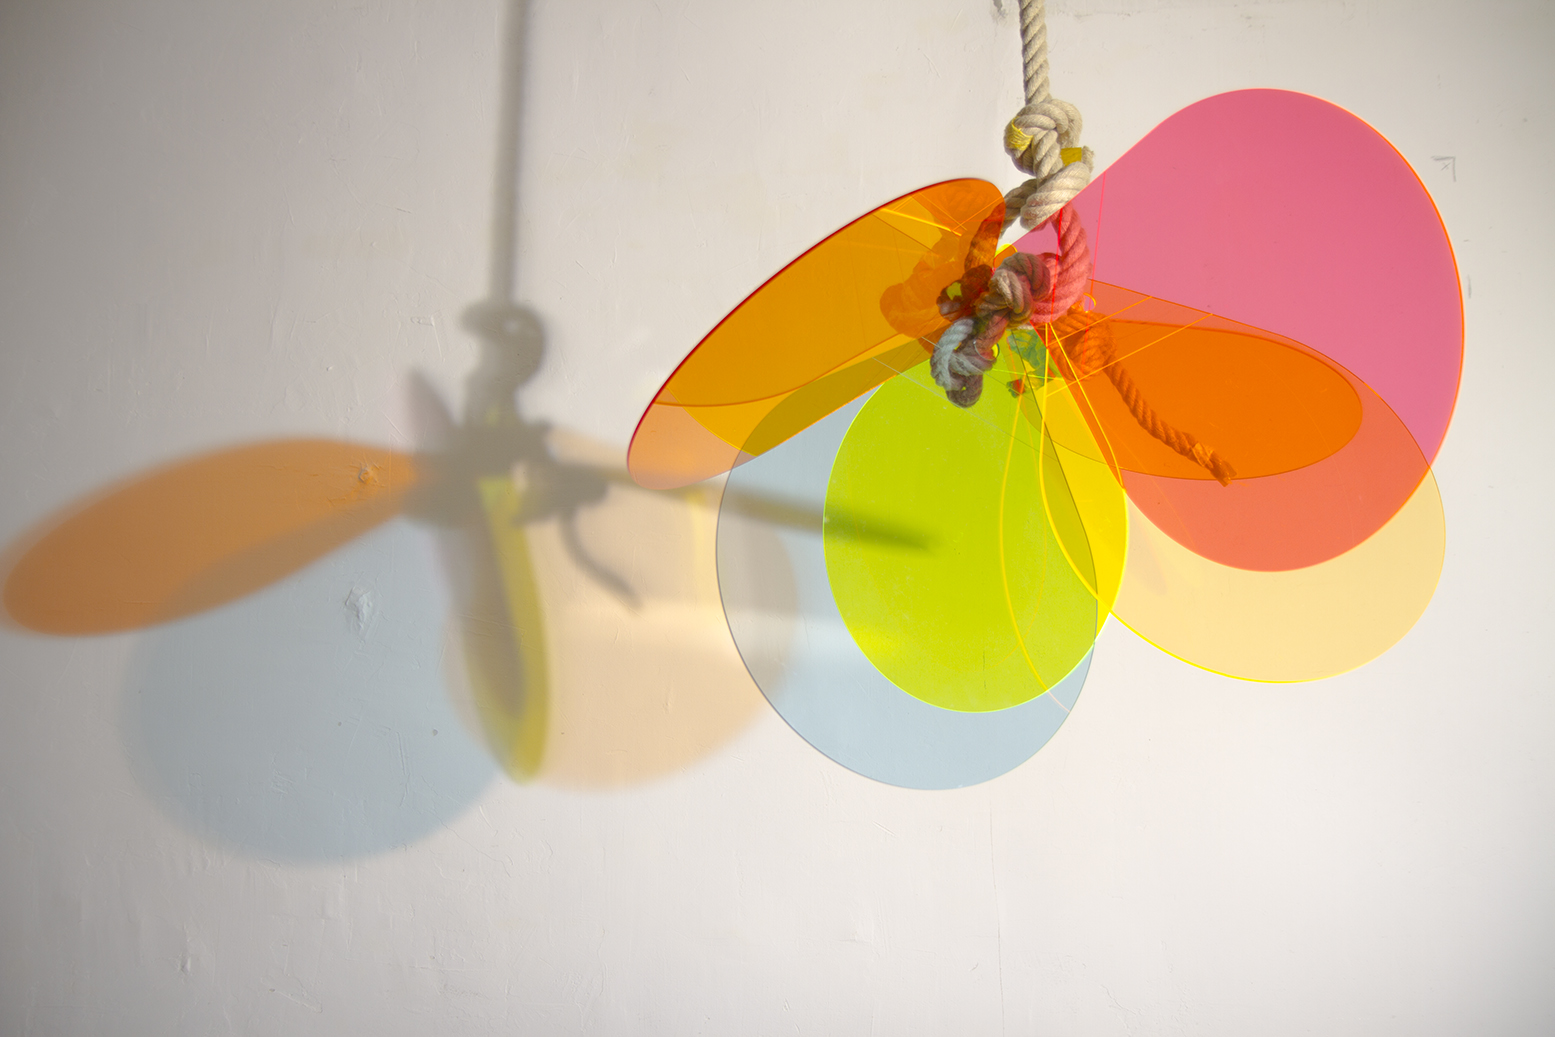 The Buoy sculpture in the studio. When installed with appropriate light it creates drawing on the wall.